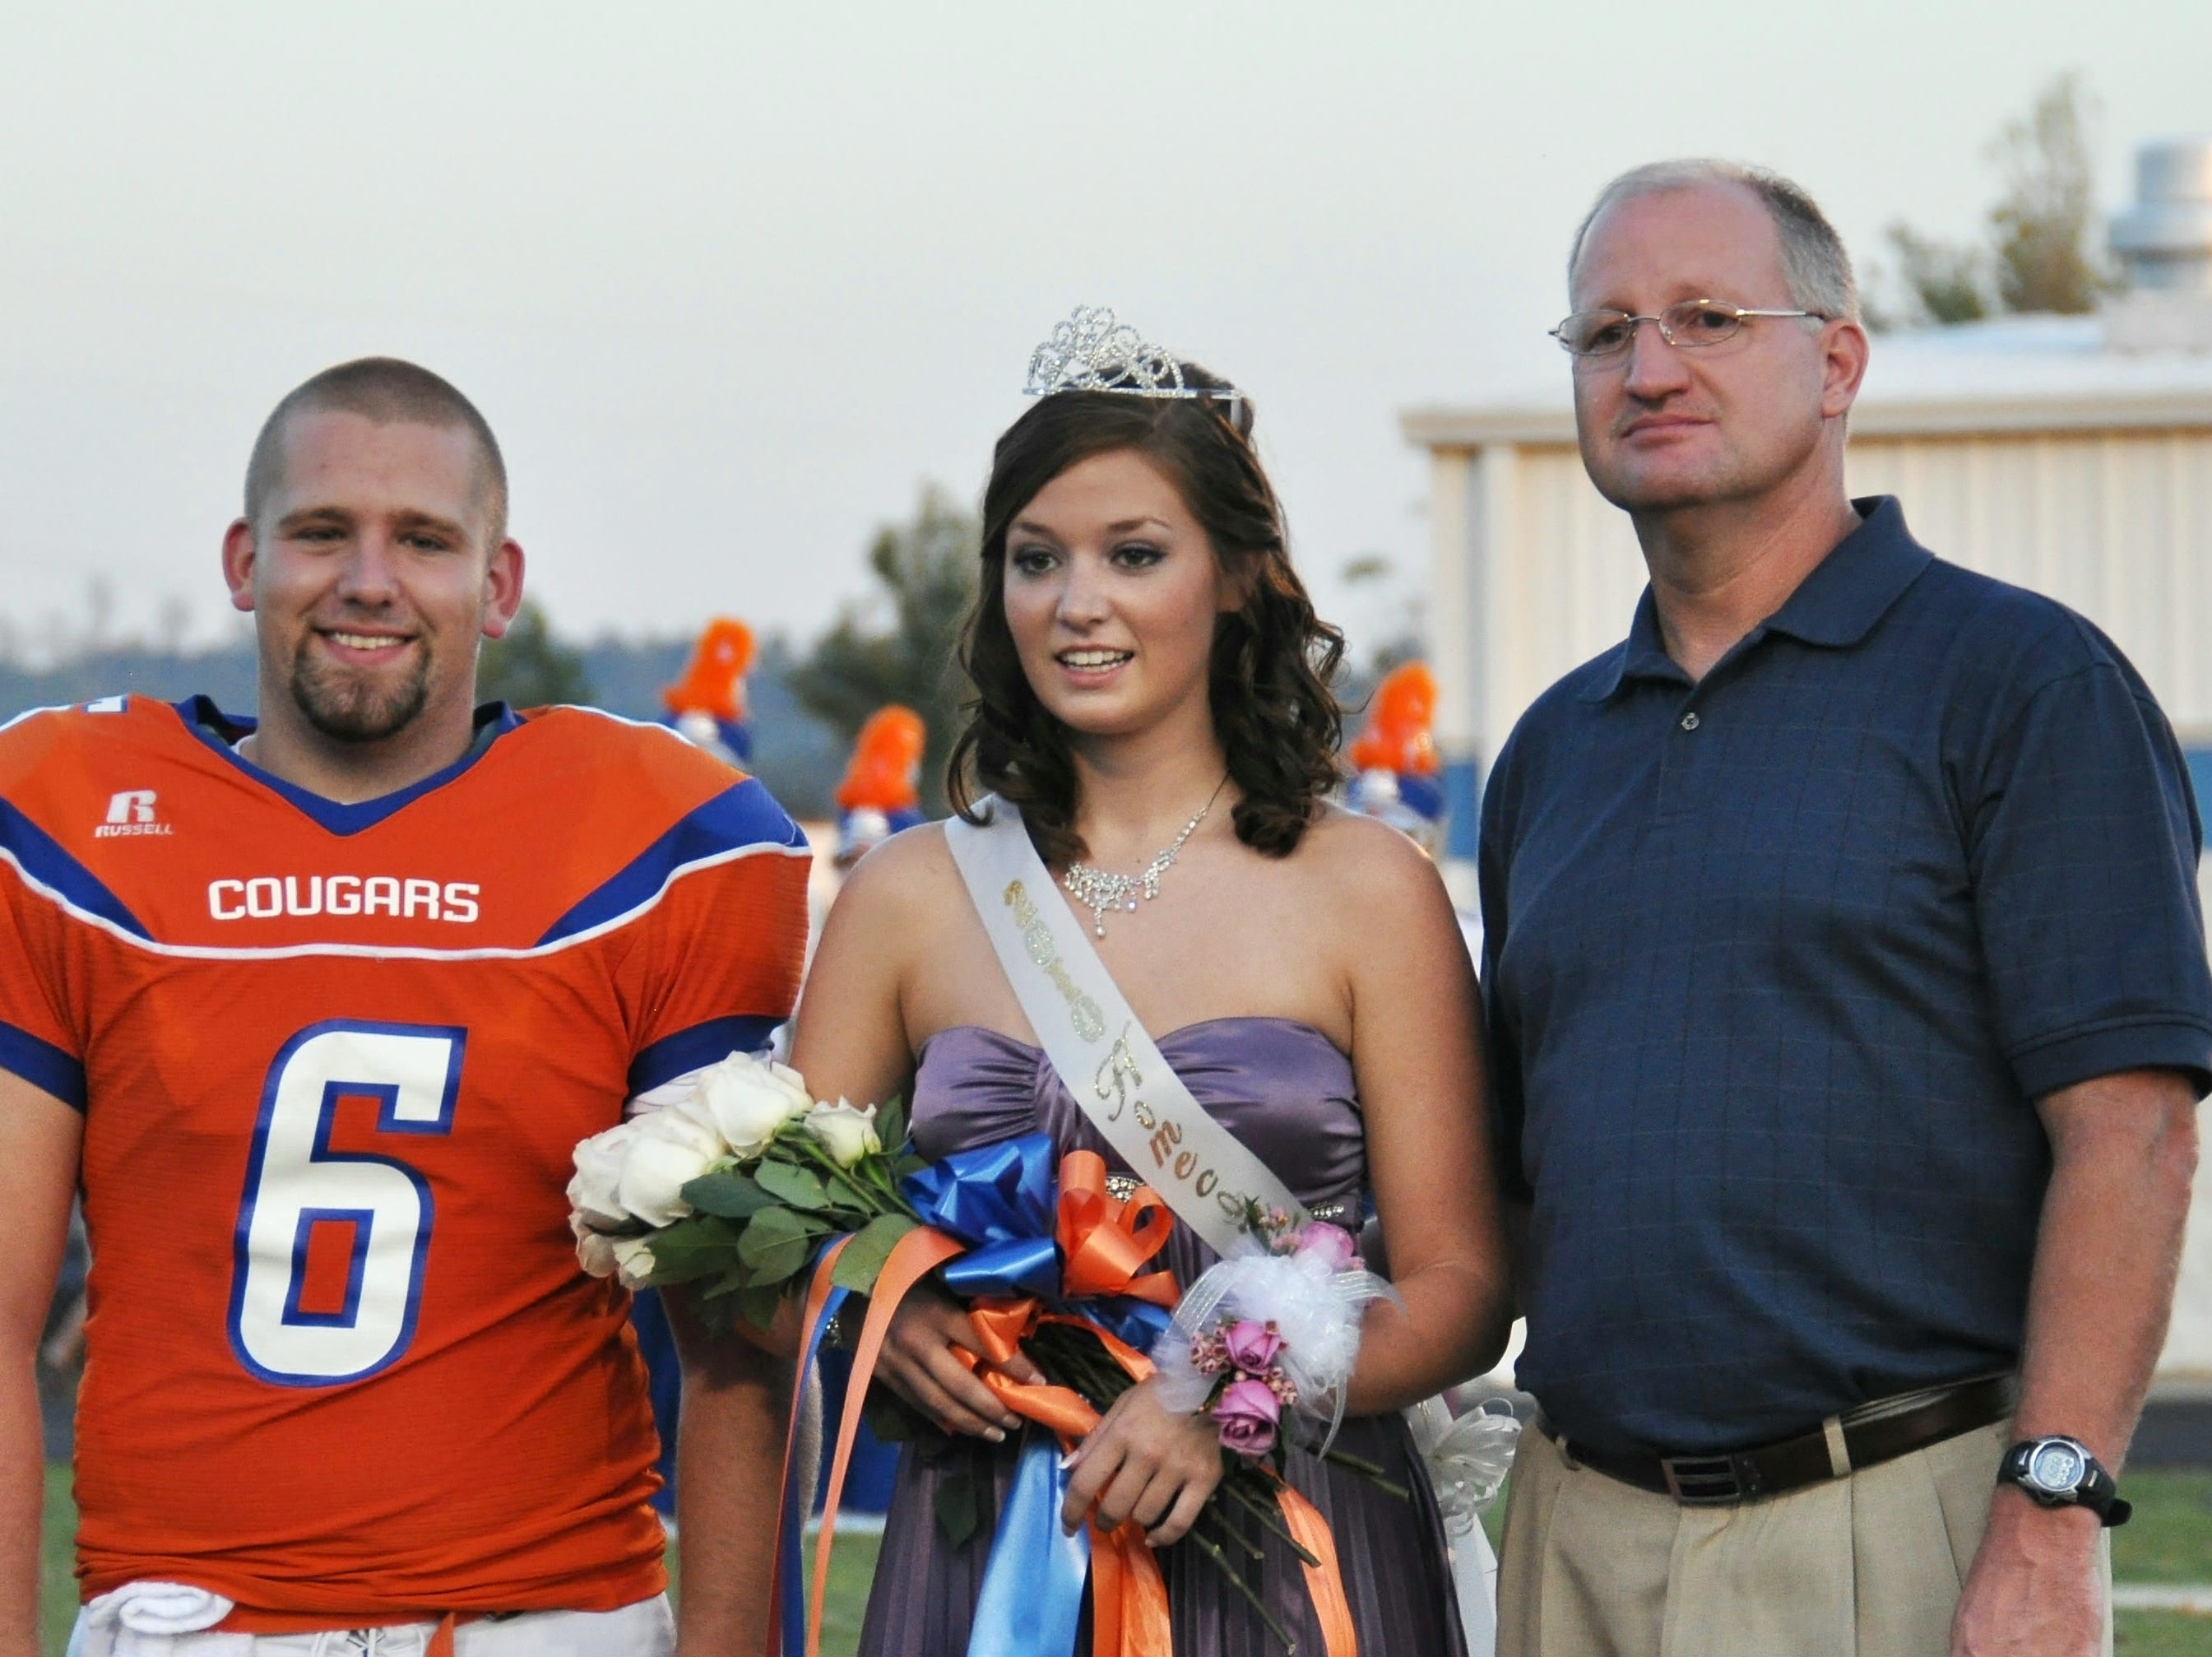 Taylor Bailey, center, is announced as Campbell County High School's Homecoming queen. She is escorted by Garrett Reese, left, and her father, Wendell Bailey.